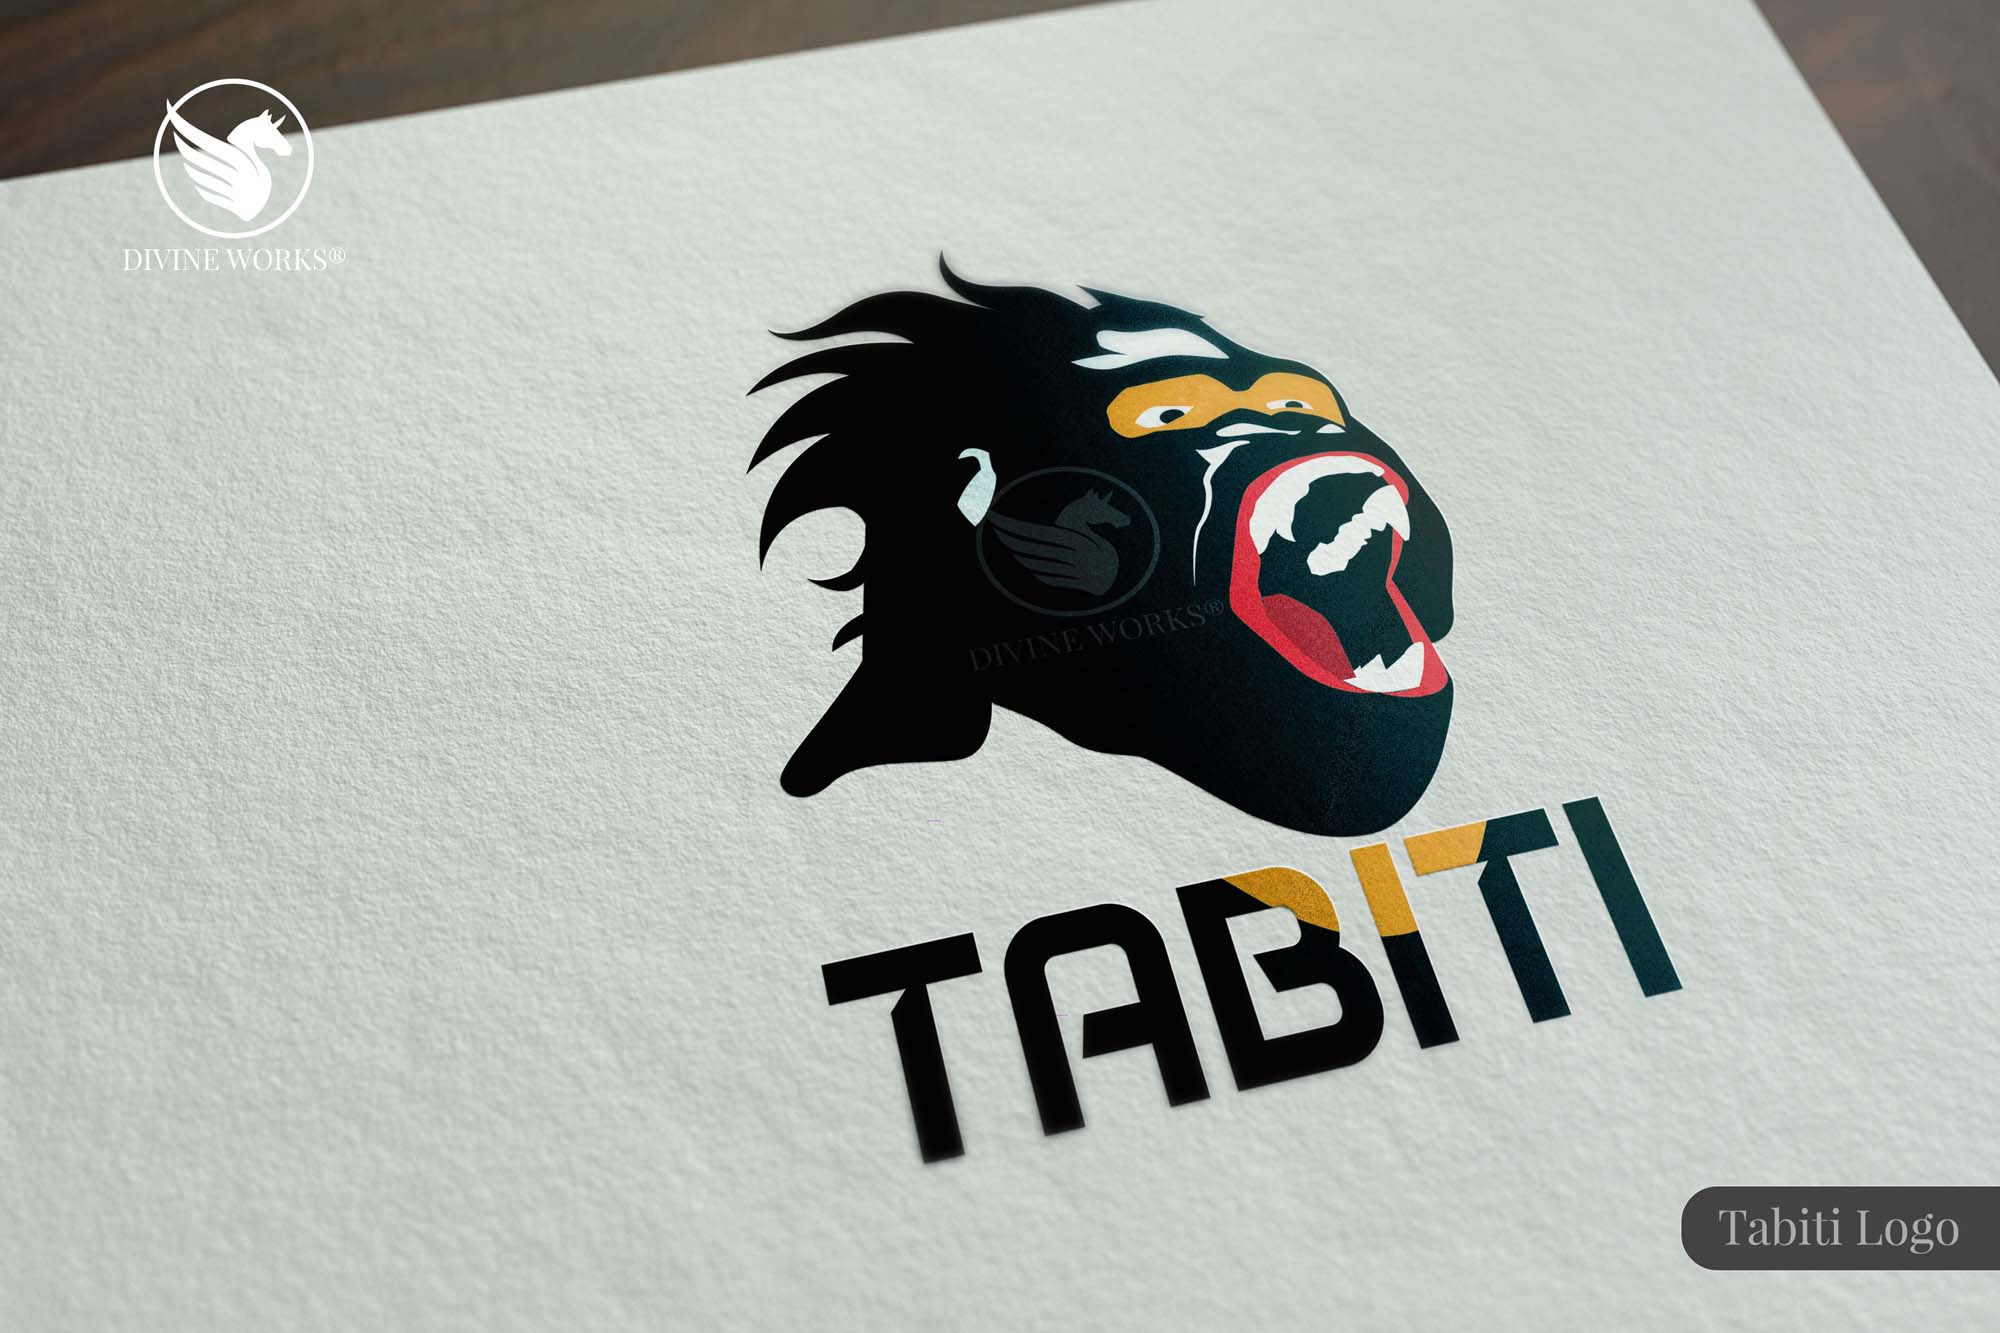 Tabiti Logo Design By Divine Works